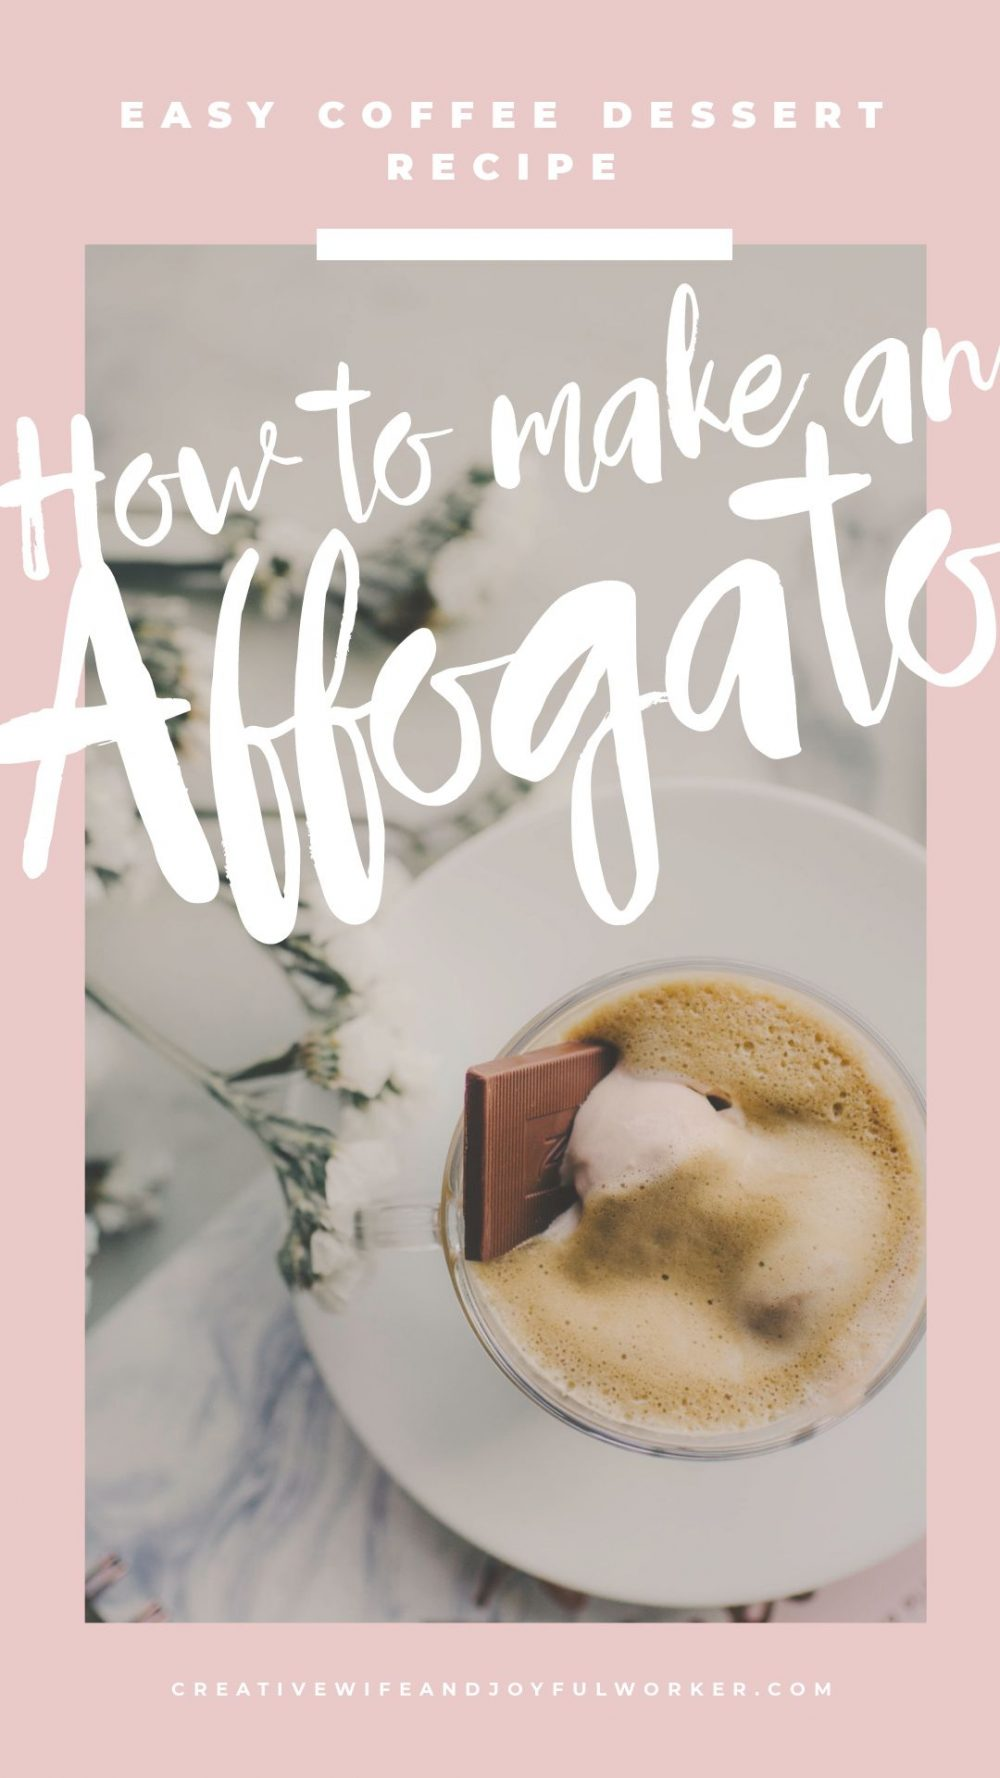 How to Make an Affogato | Easy Coffee Dessert Recipe using a nespresso